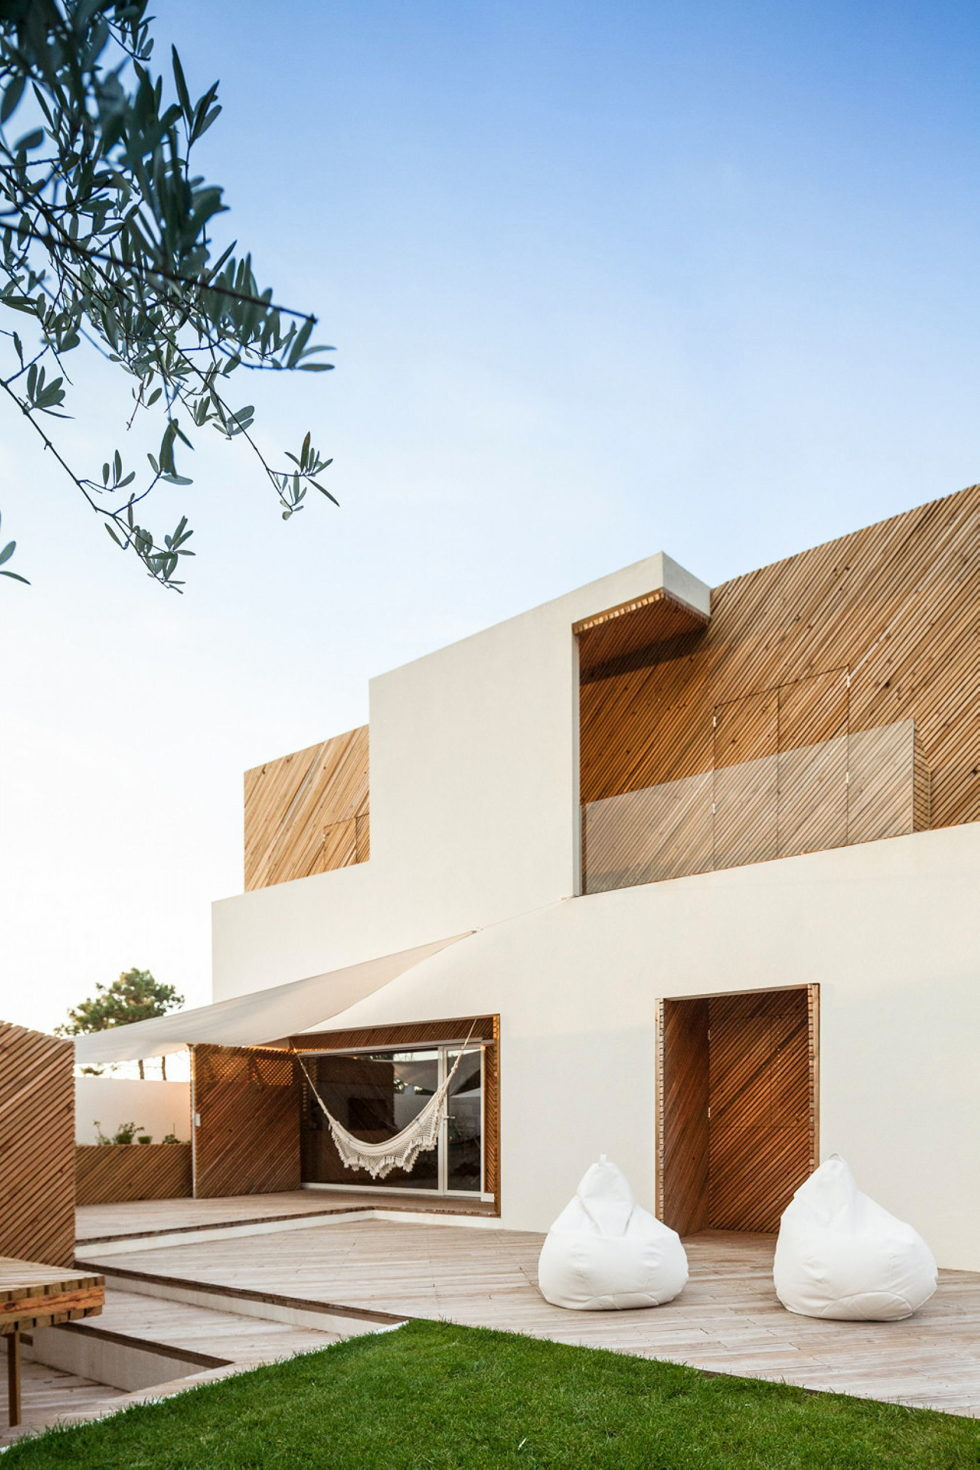 SilverWoodHouse Project In Portugal From 3r Ernesto Pereira Studio